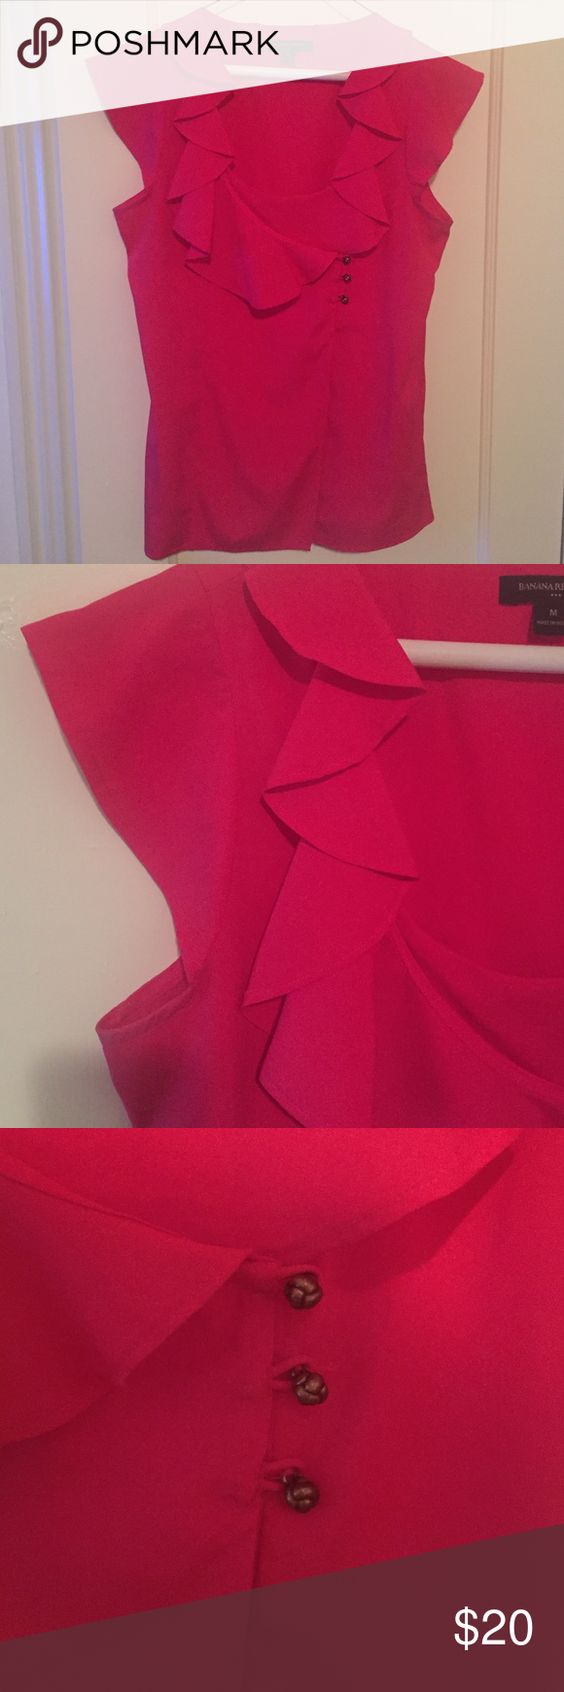 Banana Republic Ruffled Cap-Sleeve Blouse Beautiful magenta blouse... Great for work! Ruffle detail on collar. Cap sleeves. Button accent. 100% polyester. Banana Republic Tops Blouses